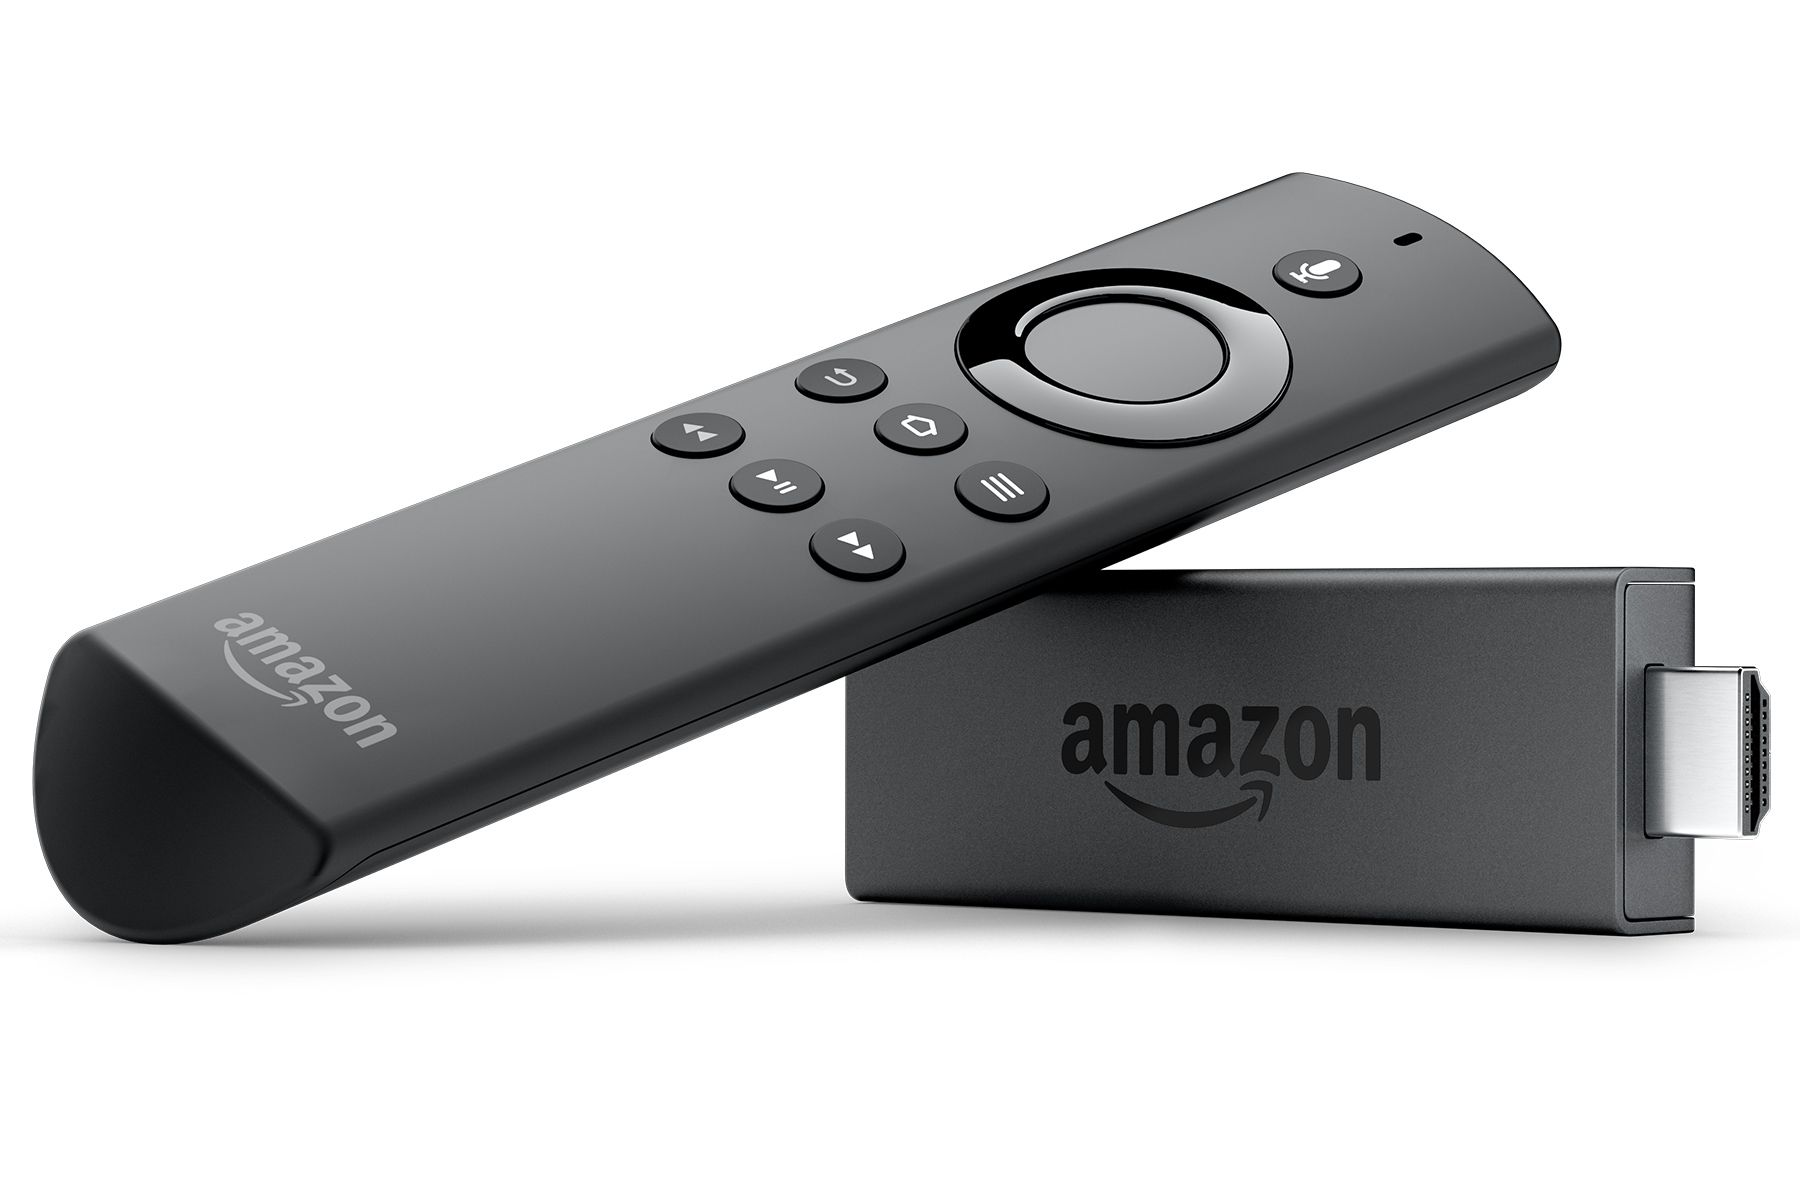 Amazons Fire TV Stick With Alexa Remote Hits The UK For GBP40 Wedding GiftsAmazon